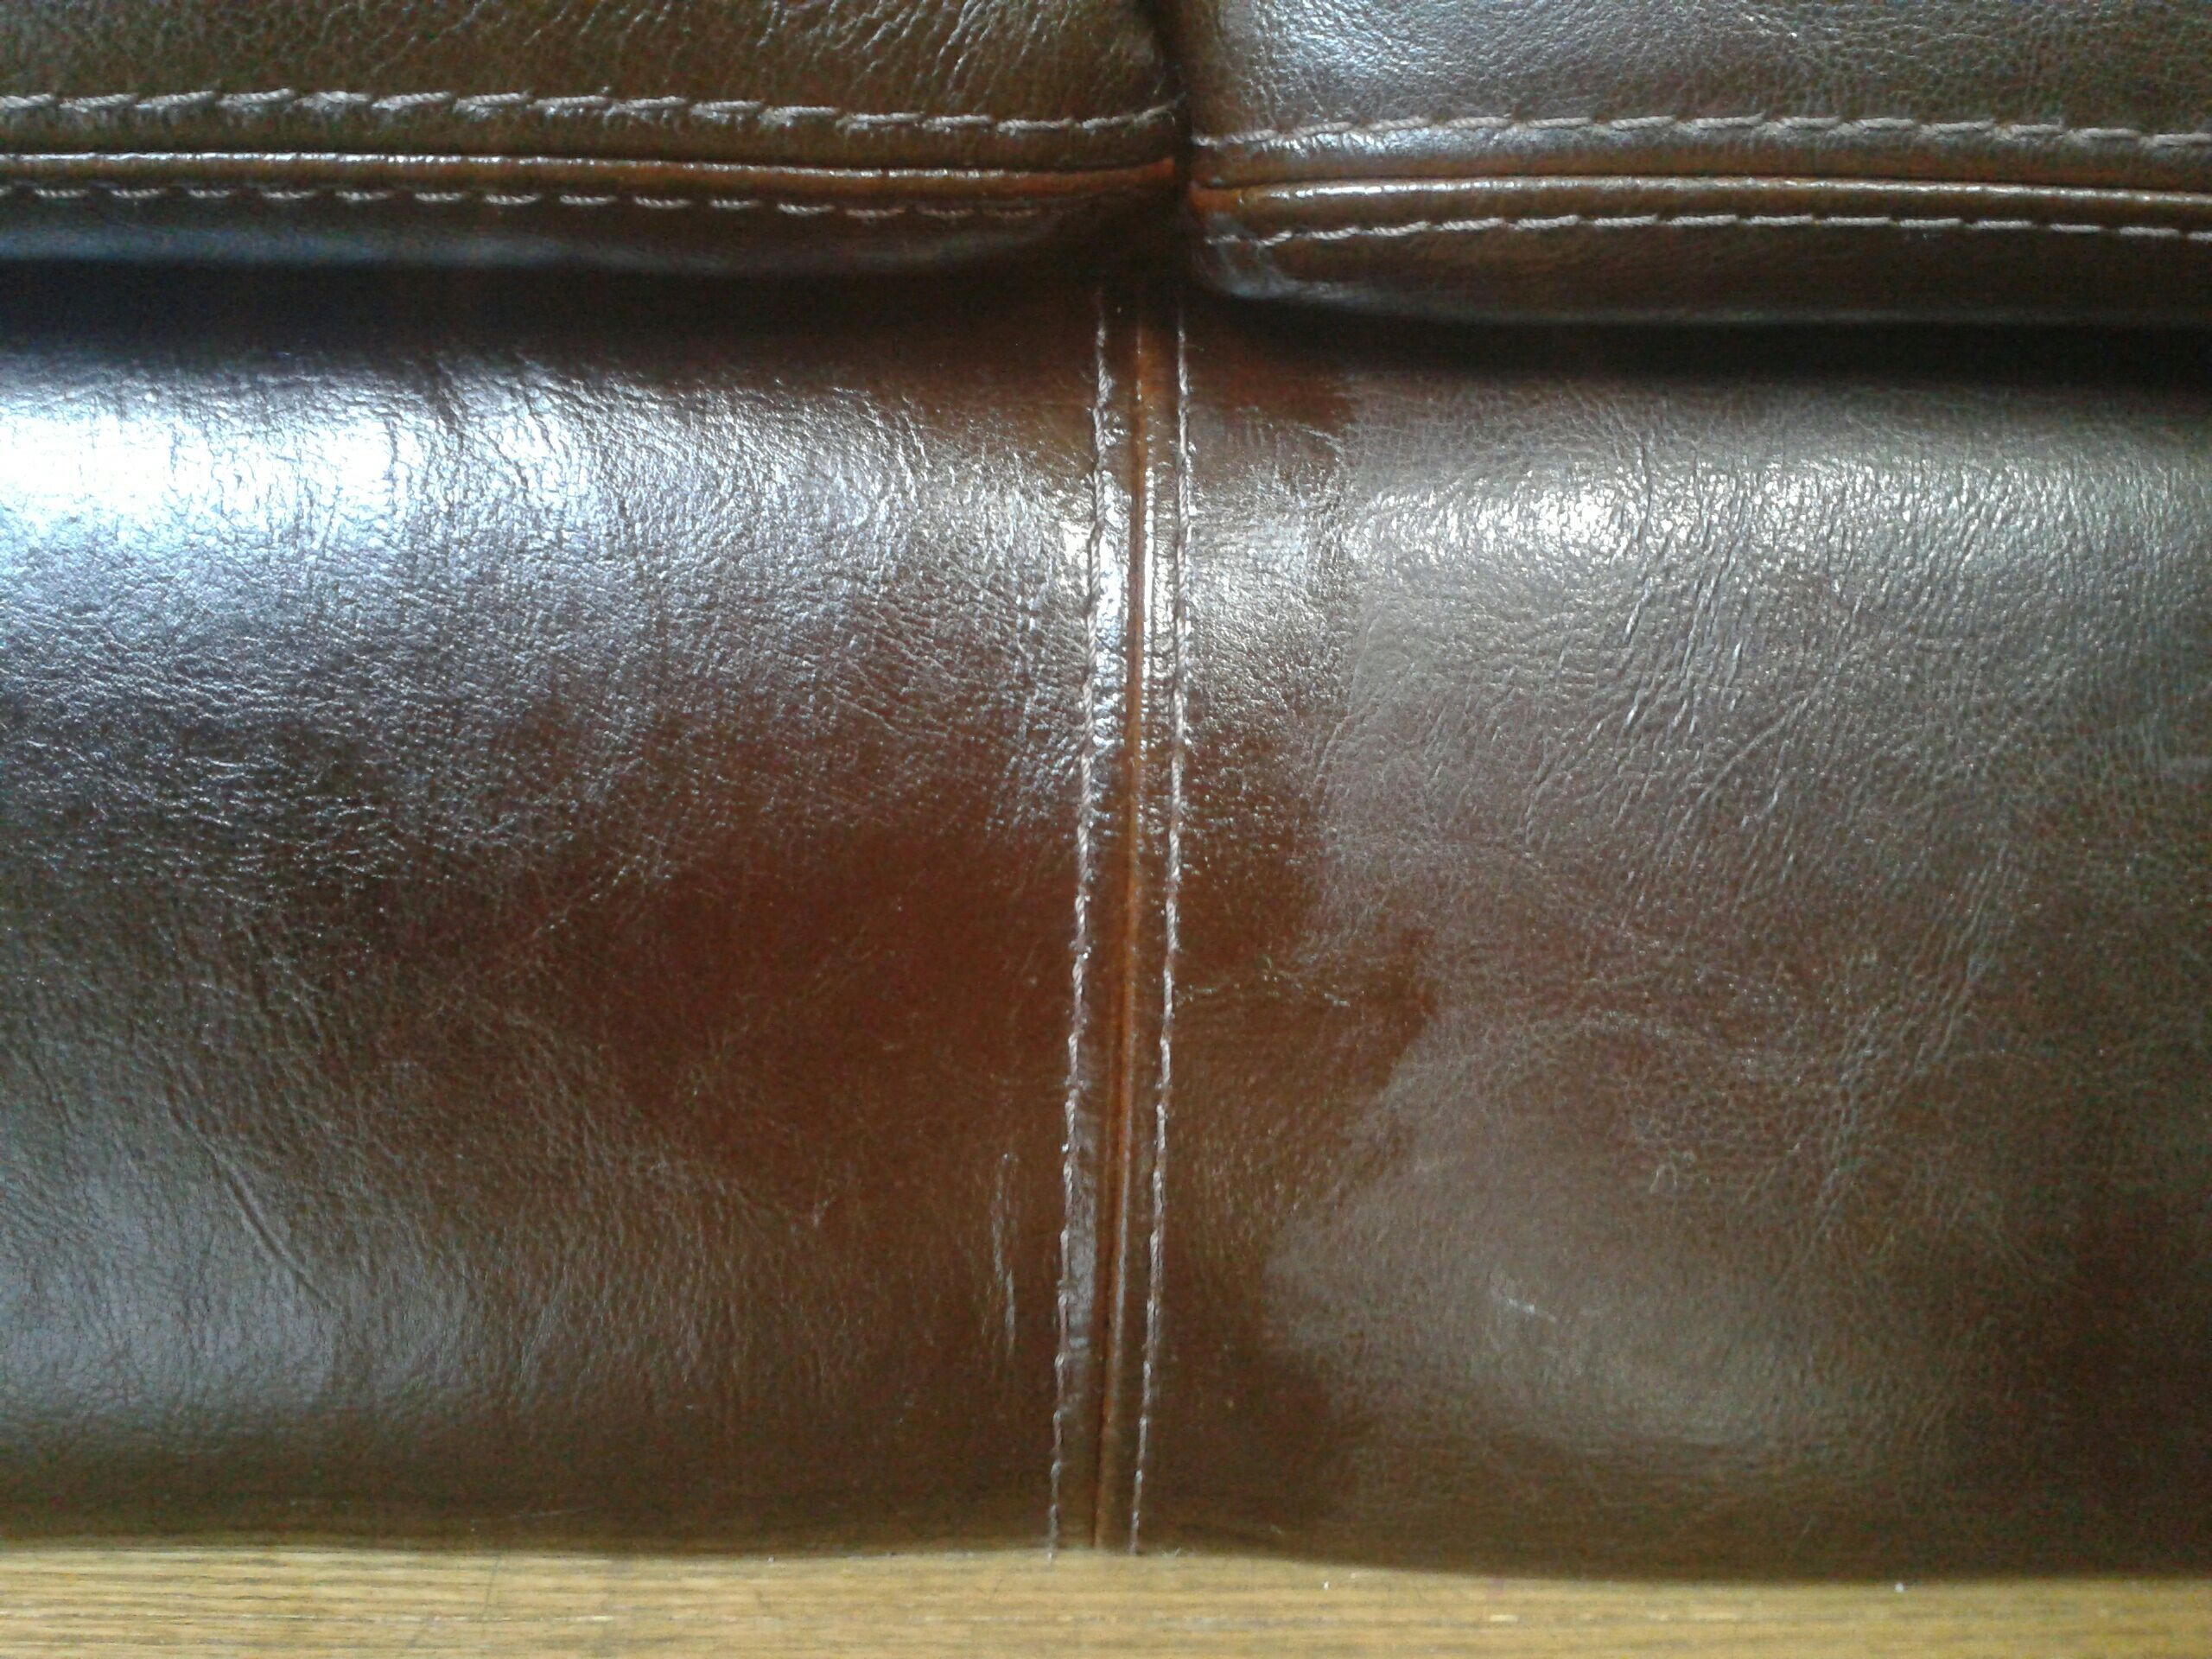 restore s conditioning cleaning best sticky conditioner leather couch one that the watch youtube not